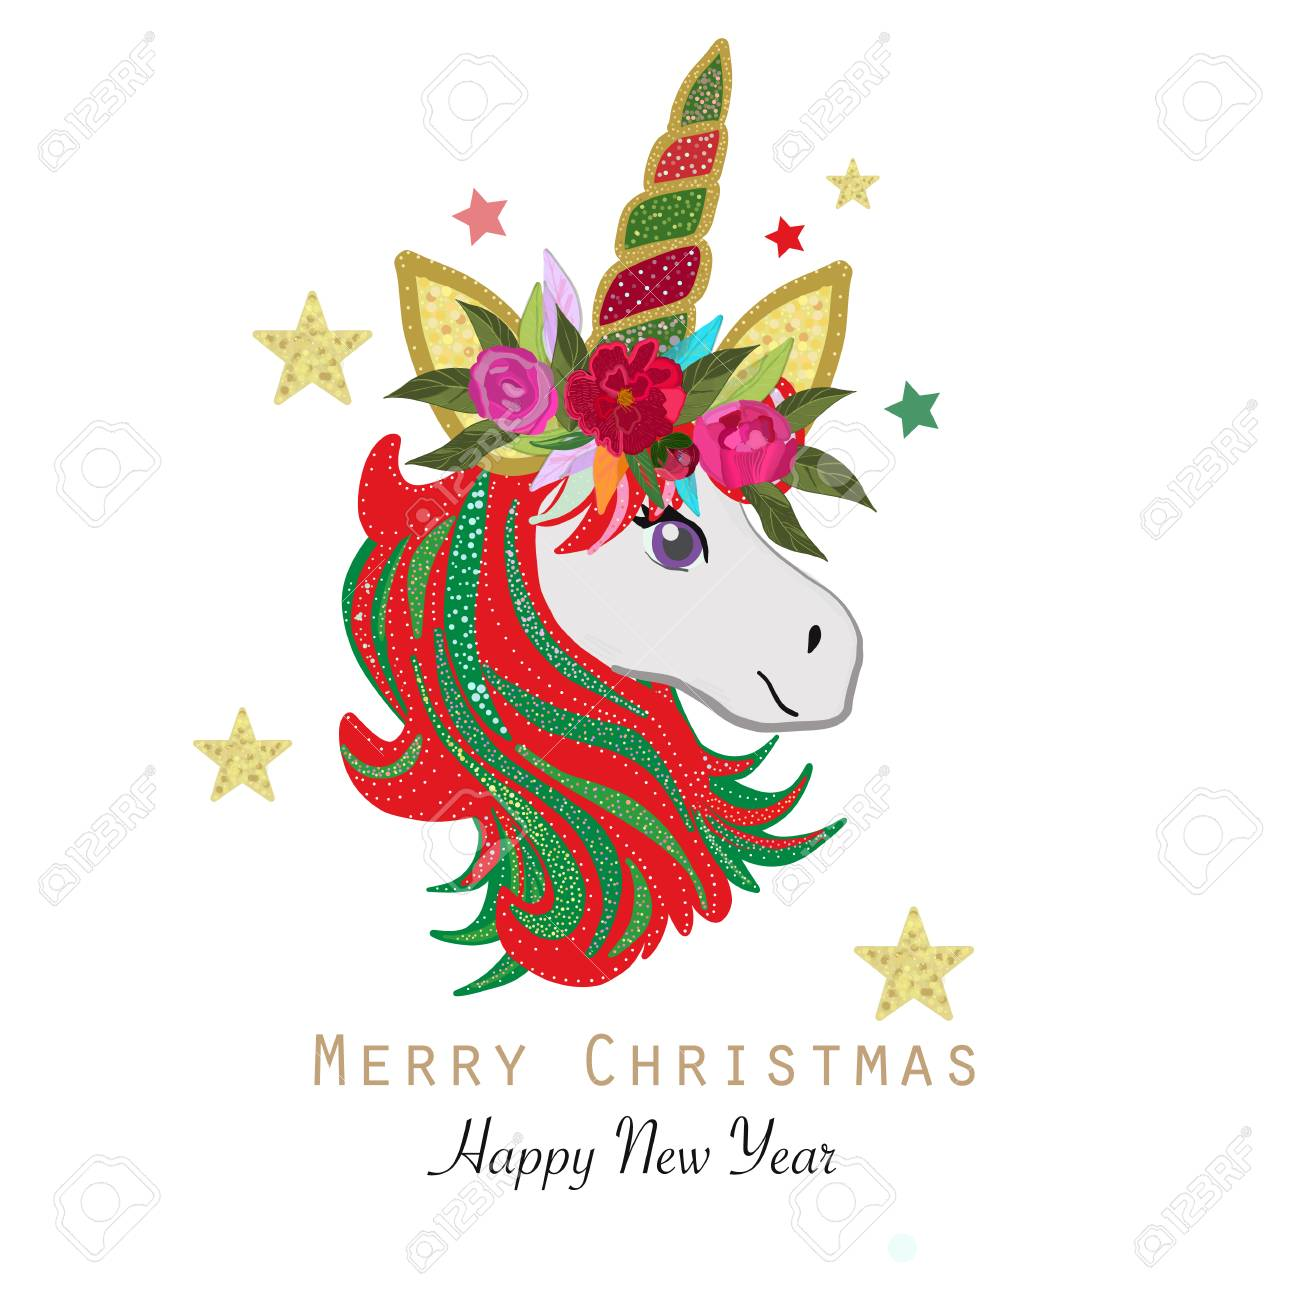 merry christmas and happy new year stock vector 112140285